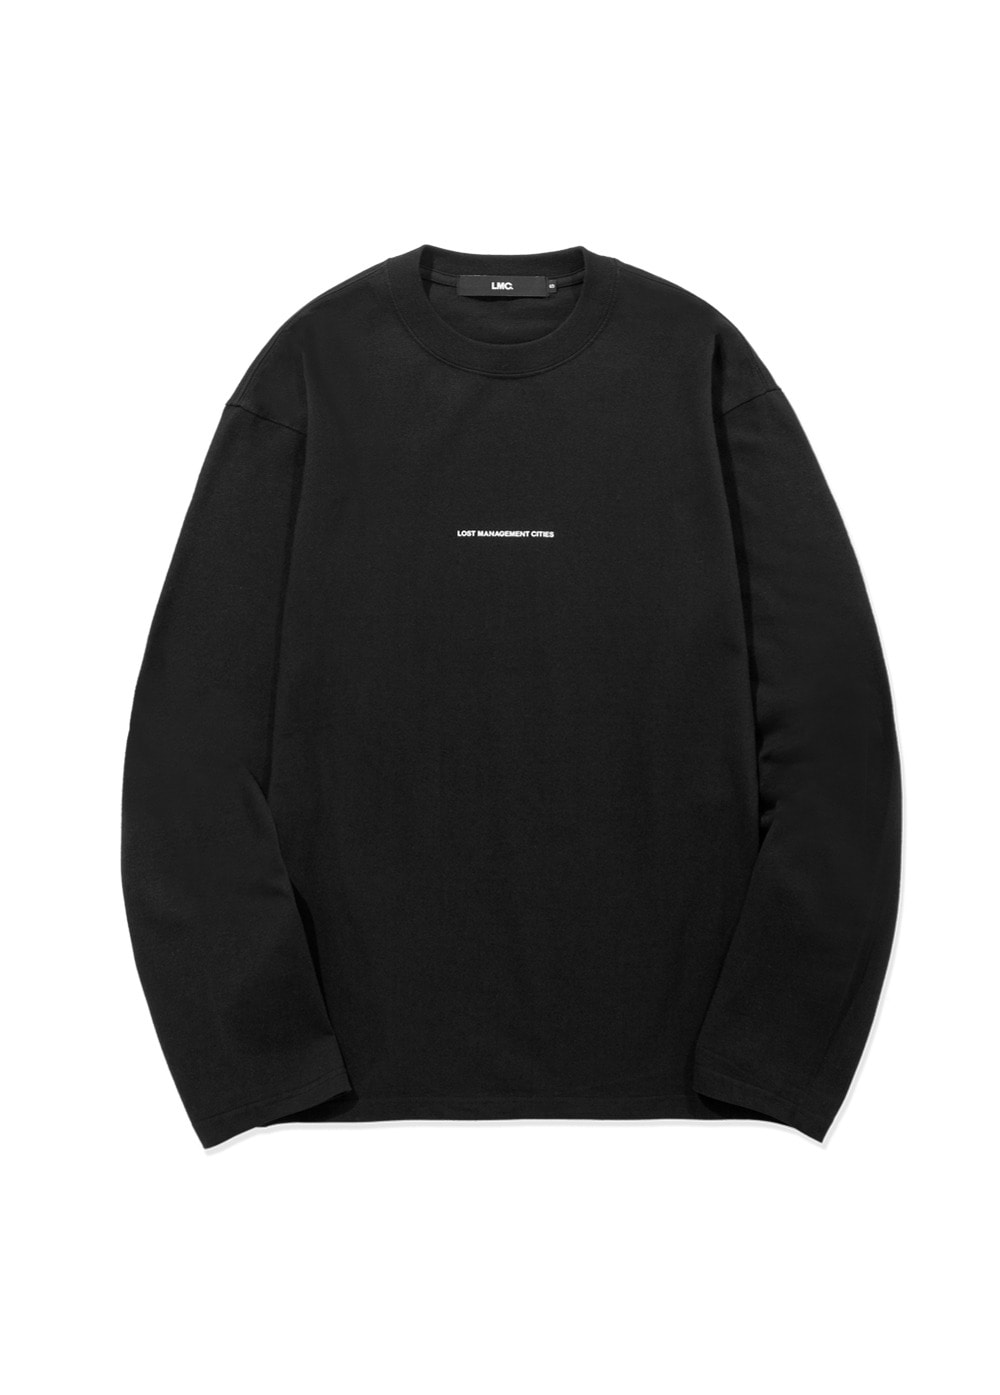 LMC MICRO FN LONG SLV TEE black